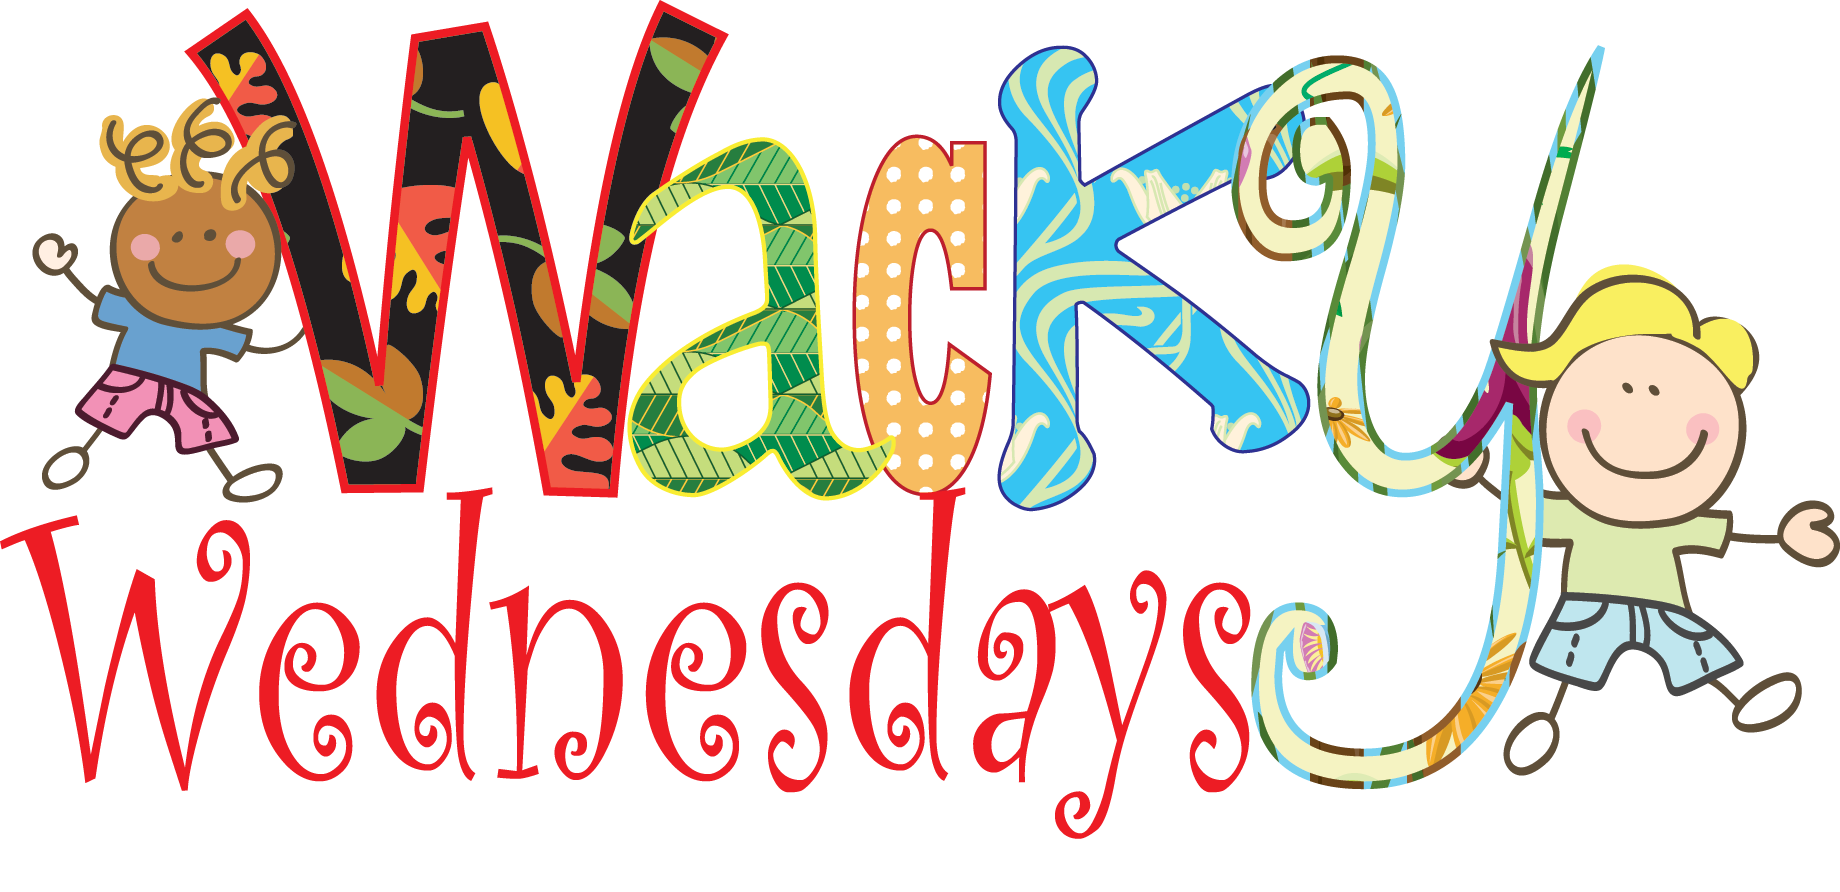 Special events. Wednesday clipart wacky outfit